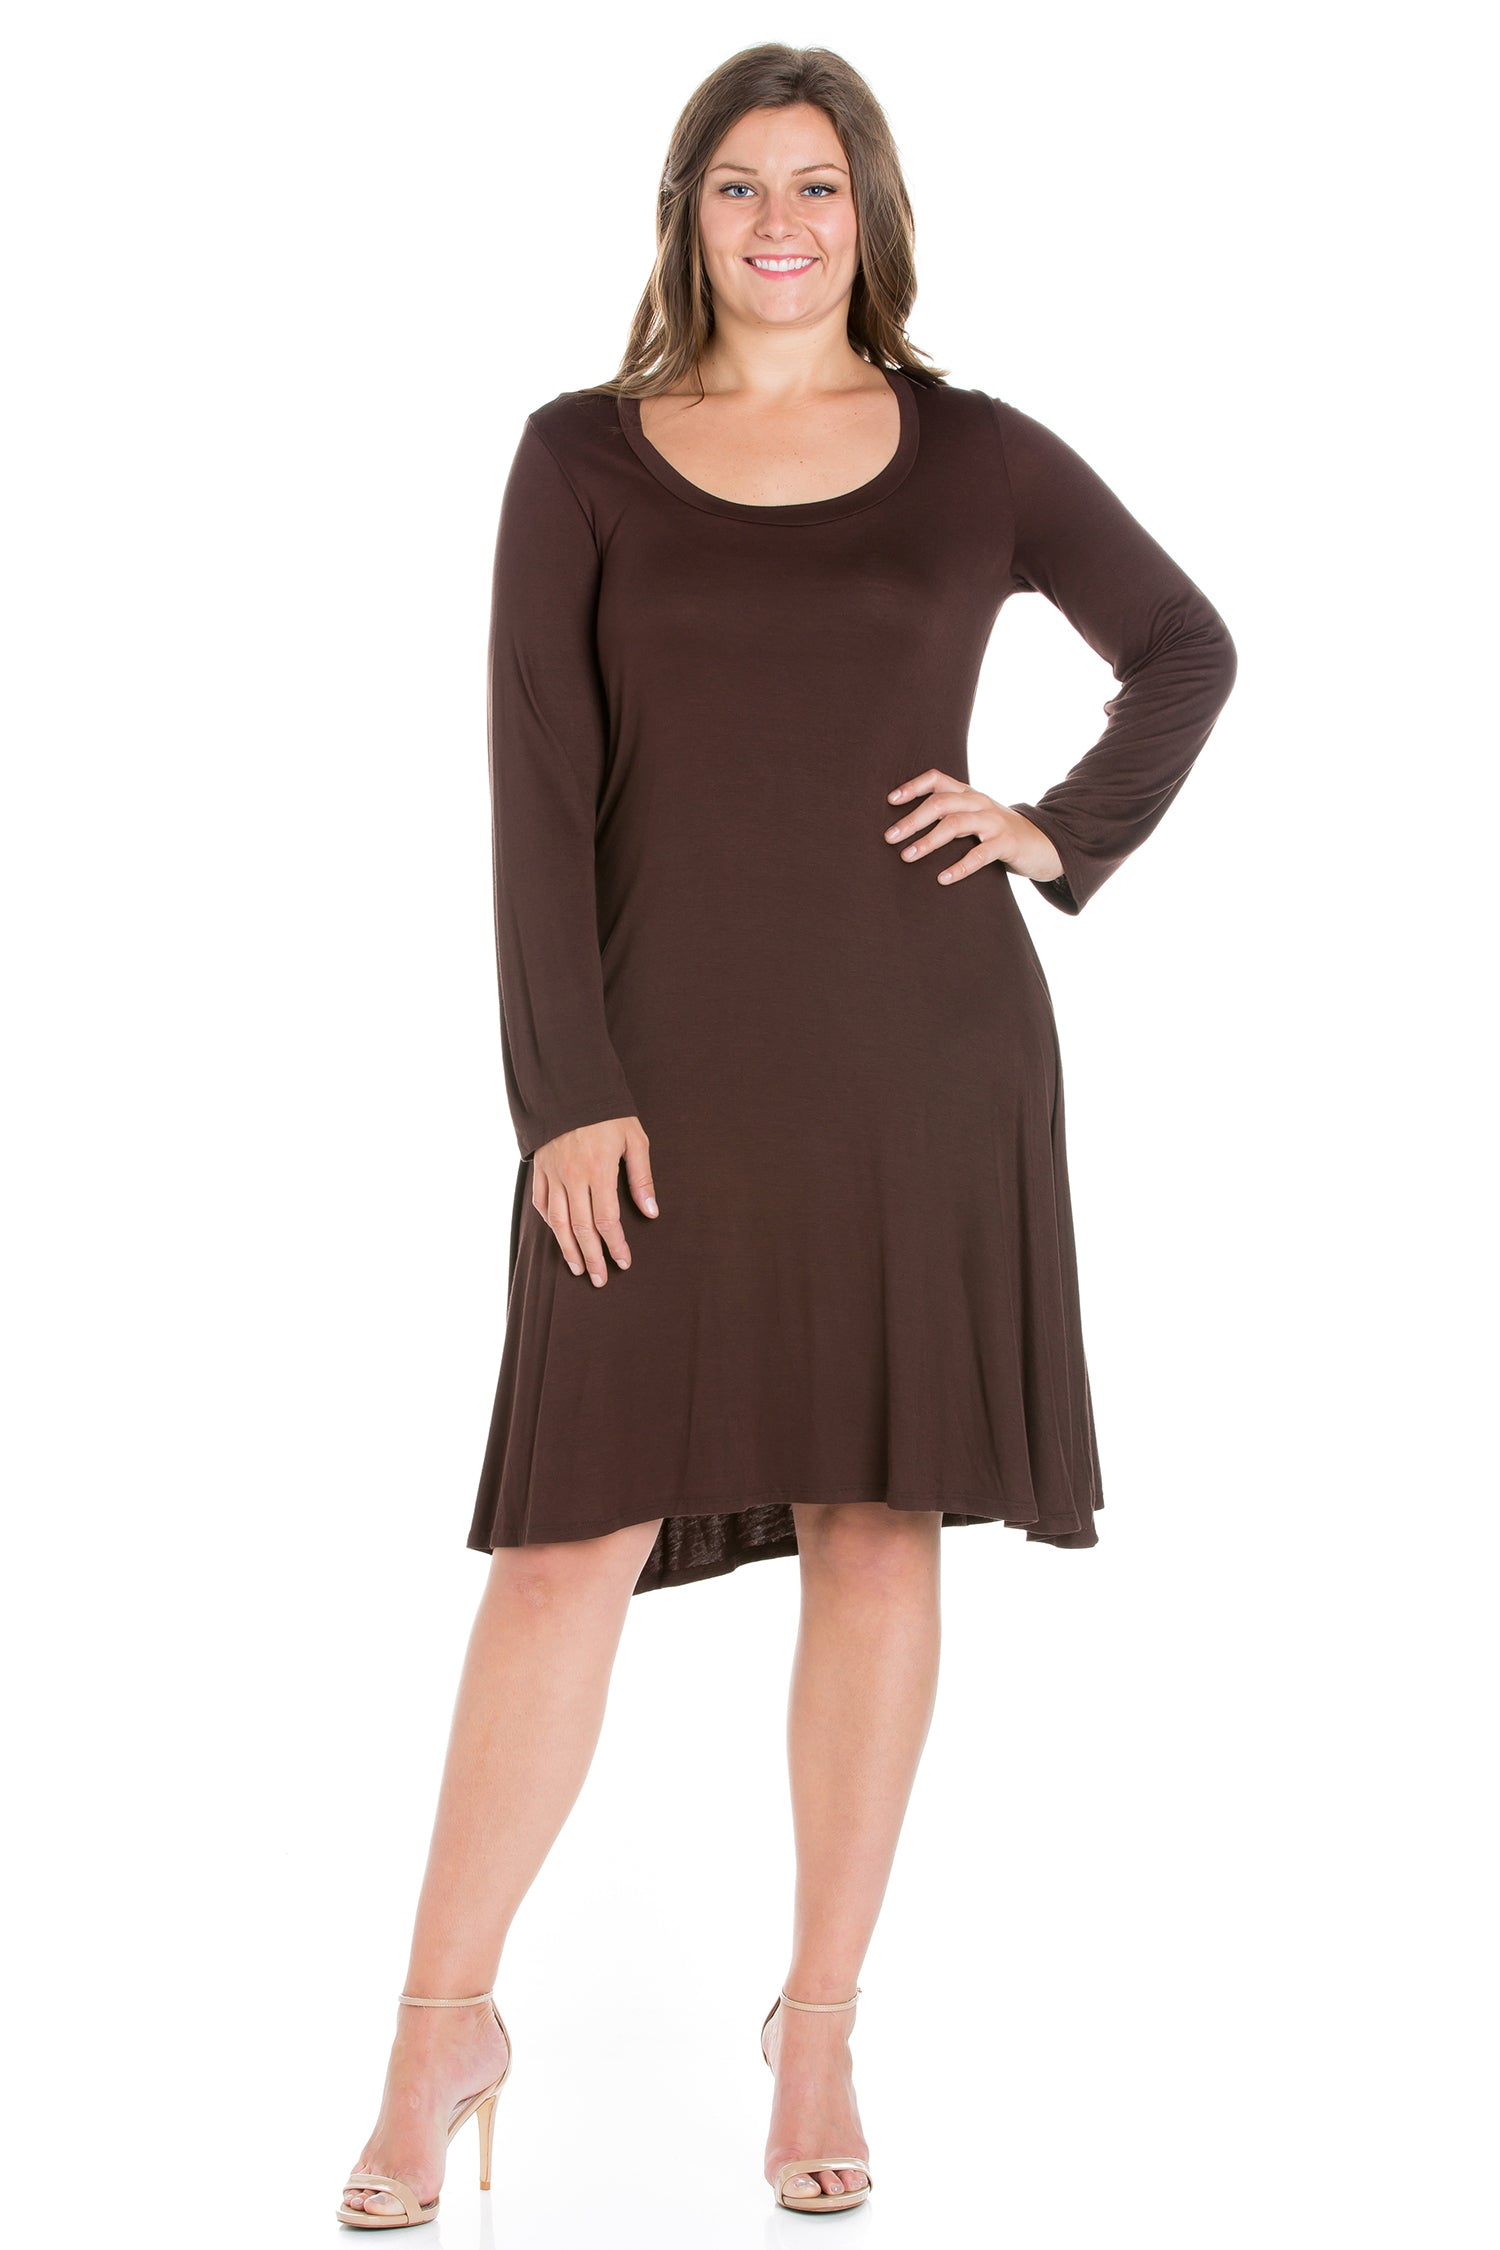 24seven Comfort Apparel Classic Long Sleeve Plus Size Flared Mini Dress-DRESSES-24Seven Comfort Apparel-BROWN-1X-24/7 Comfort Apparel